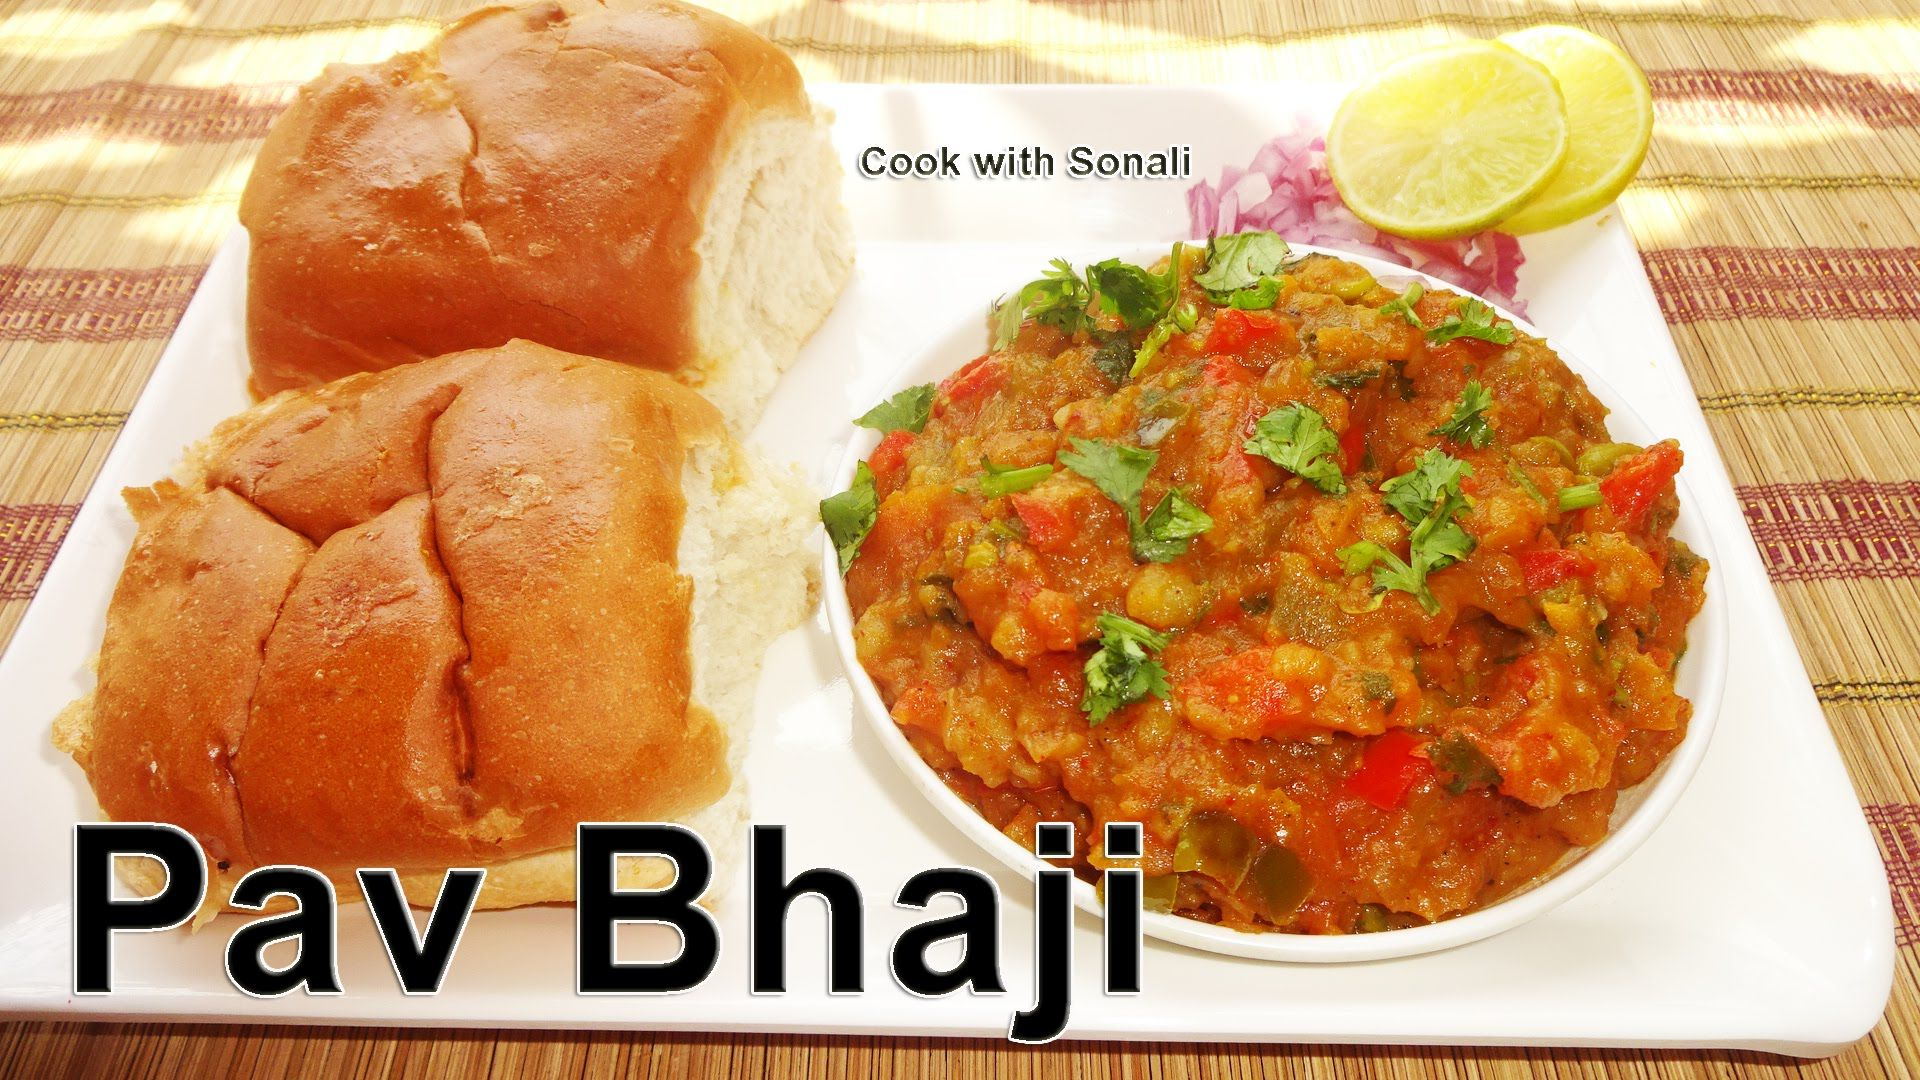 Great pav bhaji mumbai street food recipe easy vegetarian street great pav bhaji mumbai street food recipe easy vegetarian street food by cook with forumfinder Choice Image